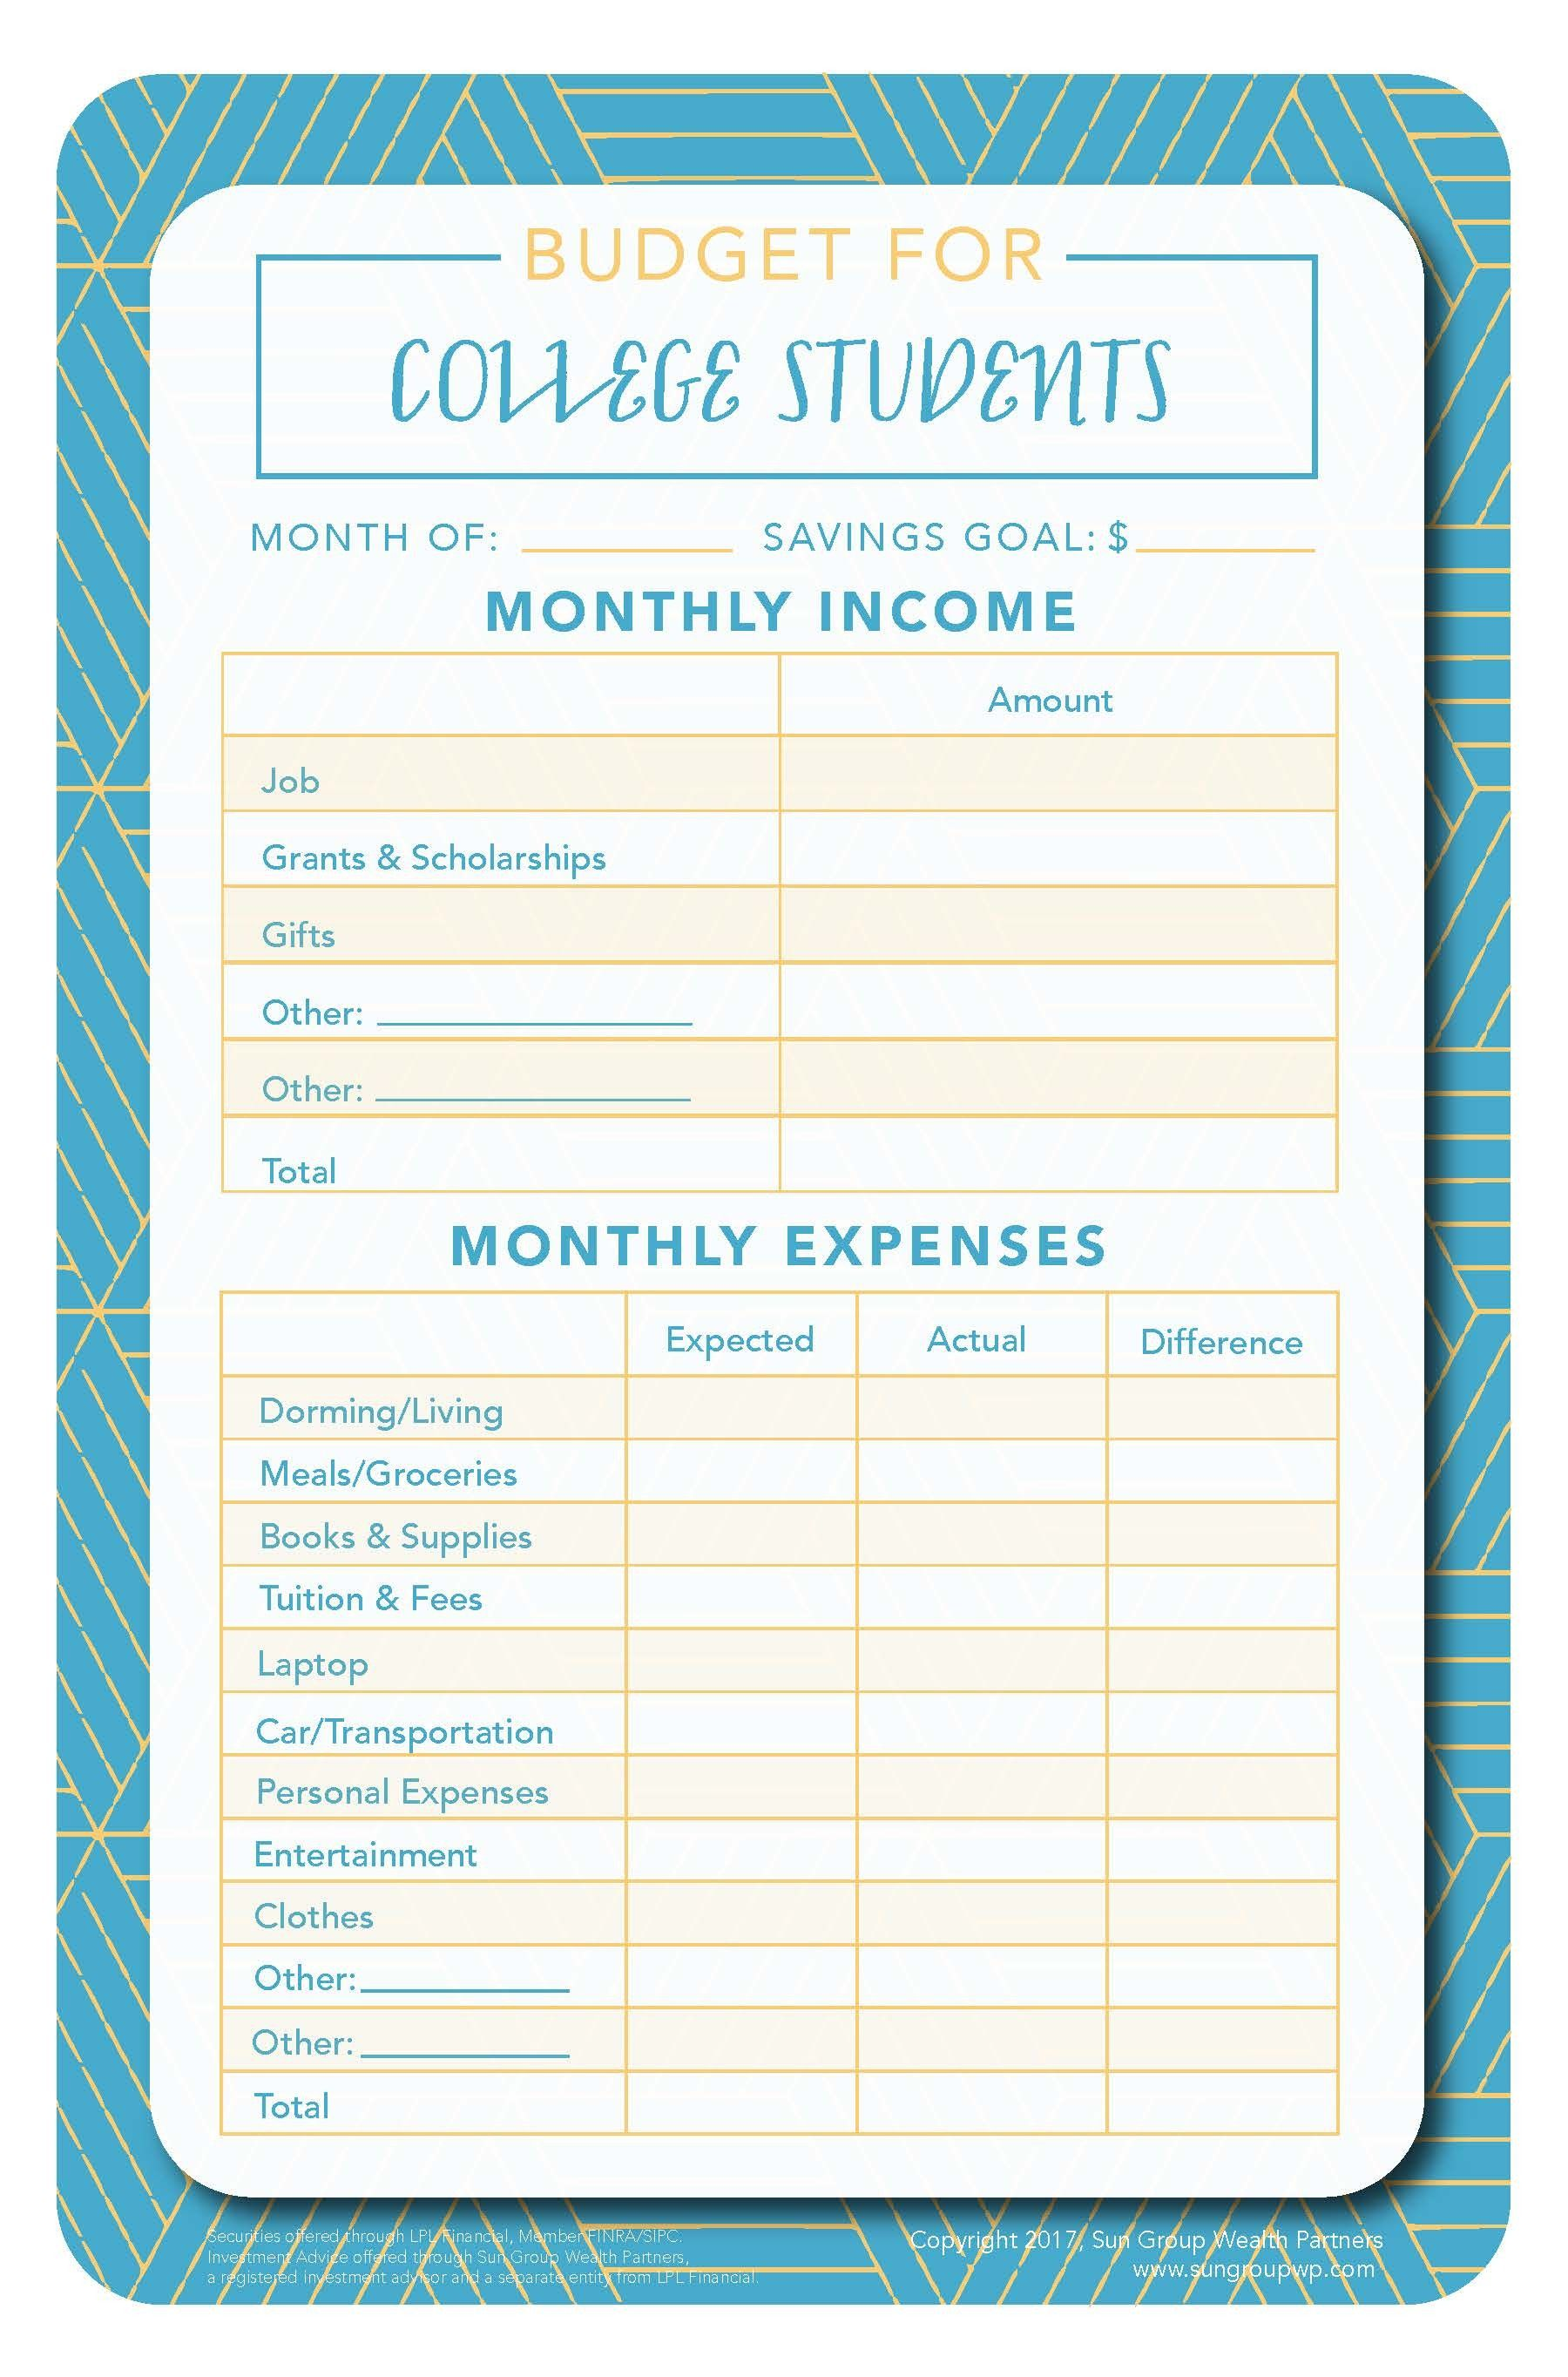 New Personal Budget Forms Exceltemplate Xls Xlstemplate